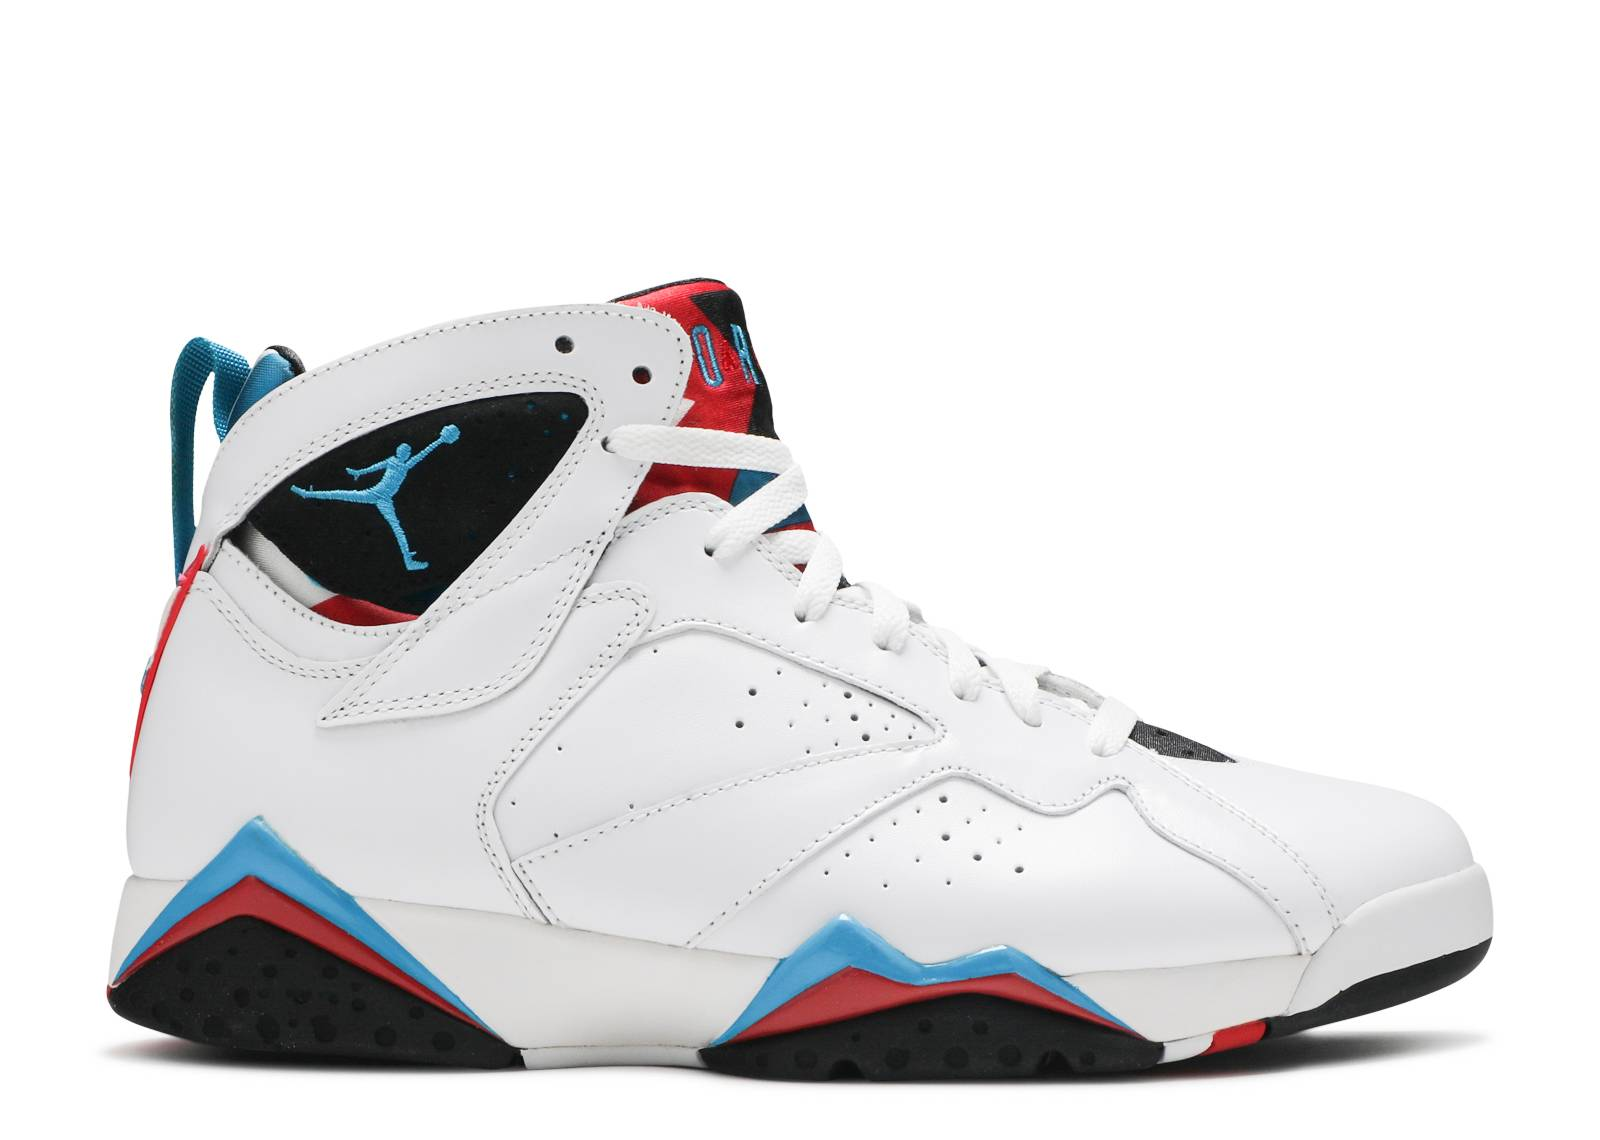 reputable site 5b8ab 24f3f air jordan 7 retro